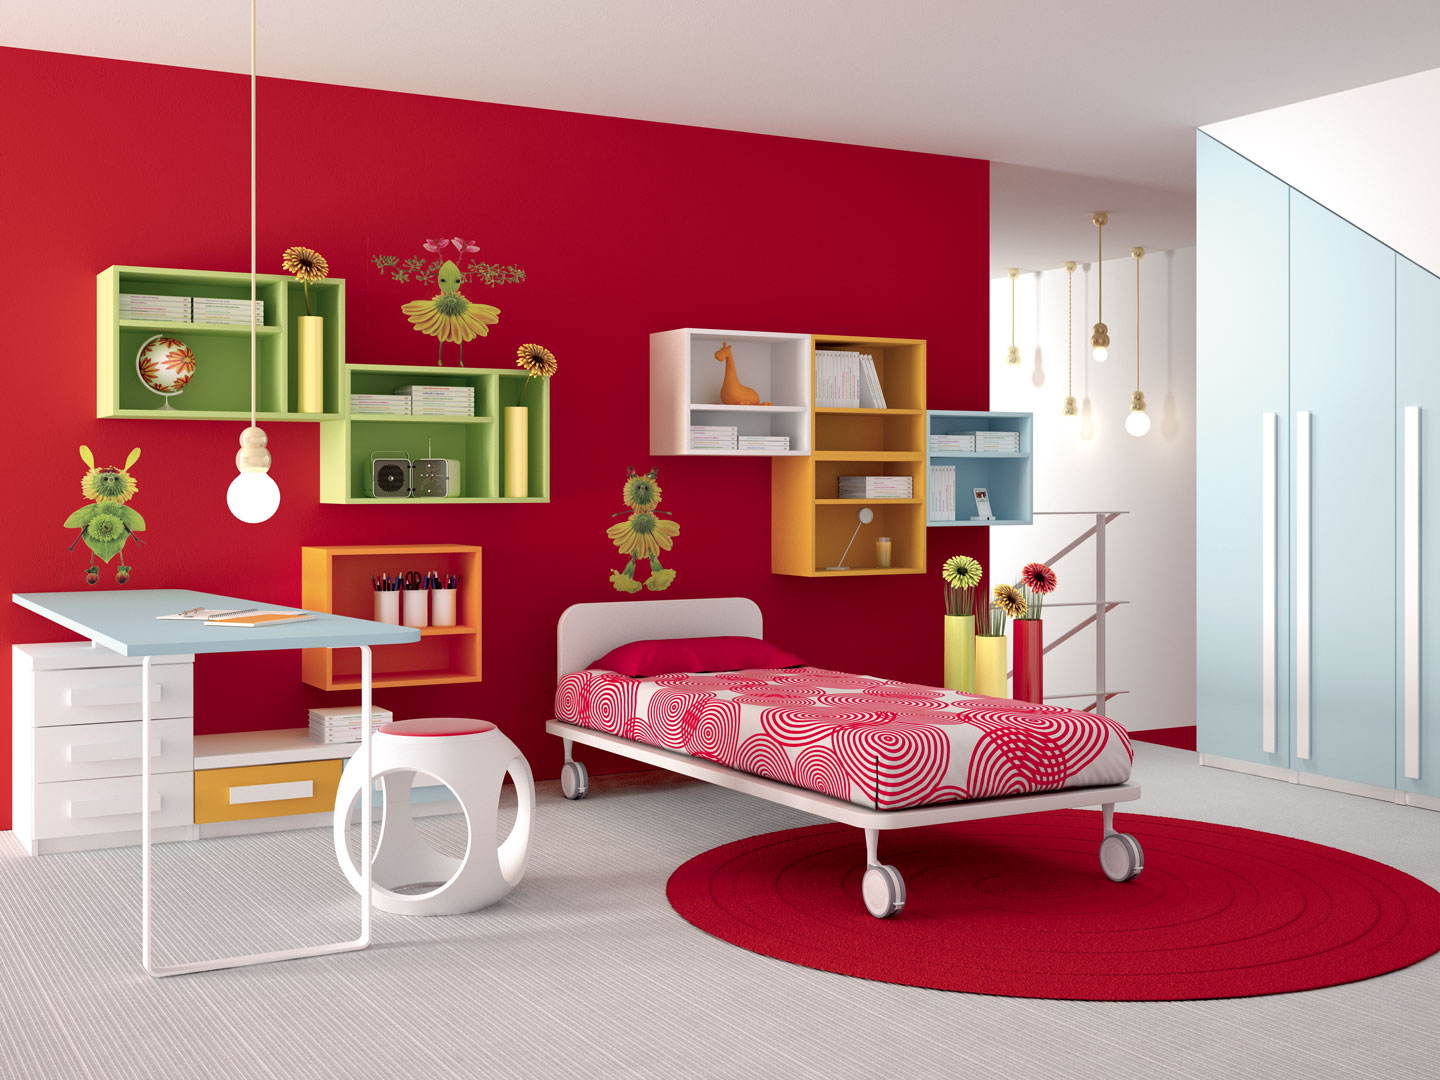 Camerette made in italy ima mobili composizione 14 newformsdesign camerette newformsdesign - Mobili made in italy ...